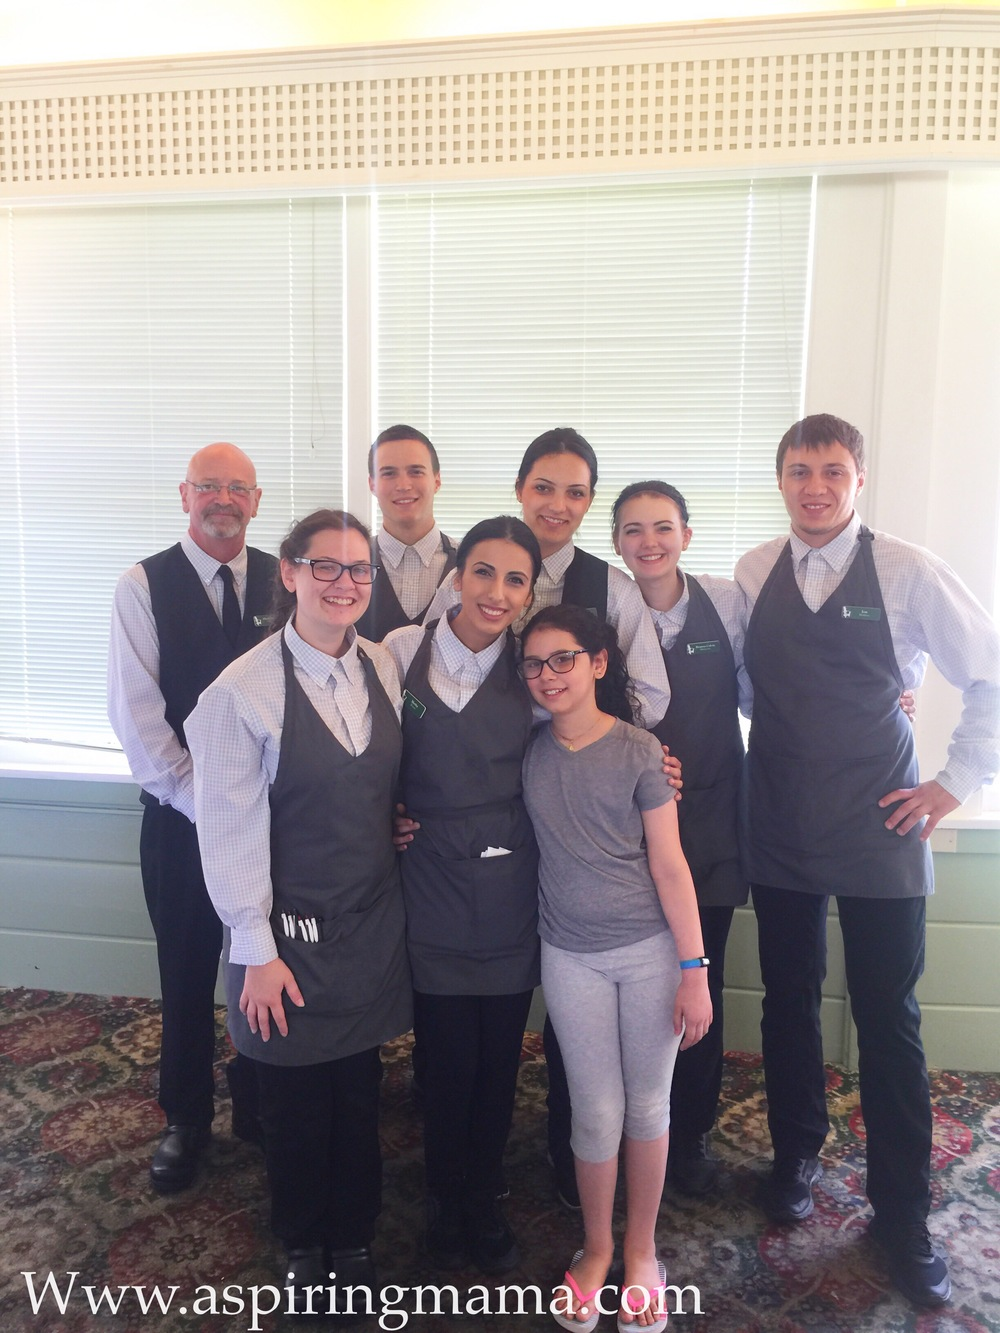 Eliana with the incredible wait staff in the main dining room at Basin Harbor Club.